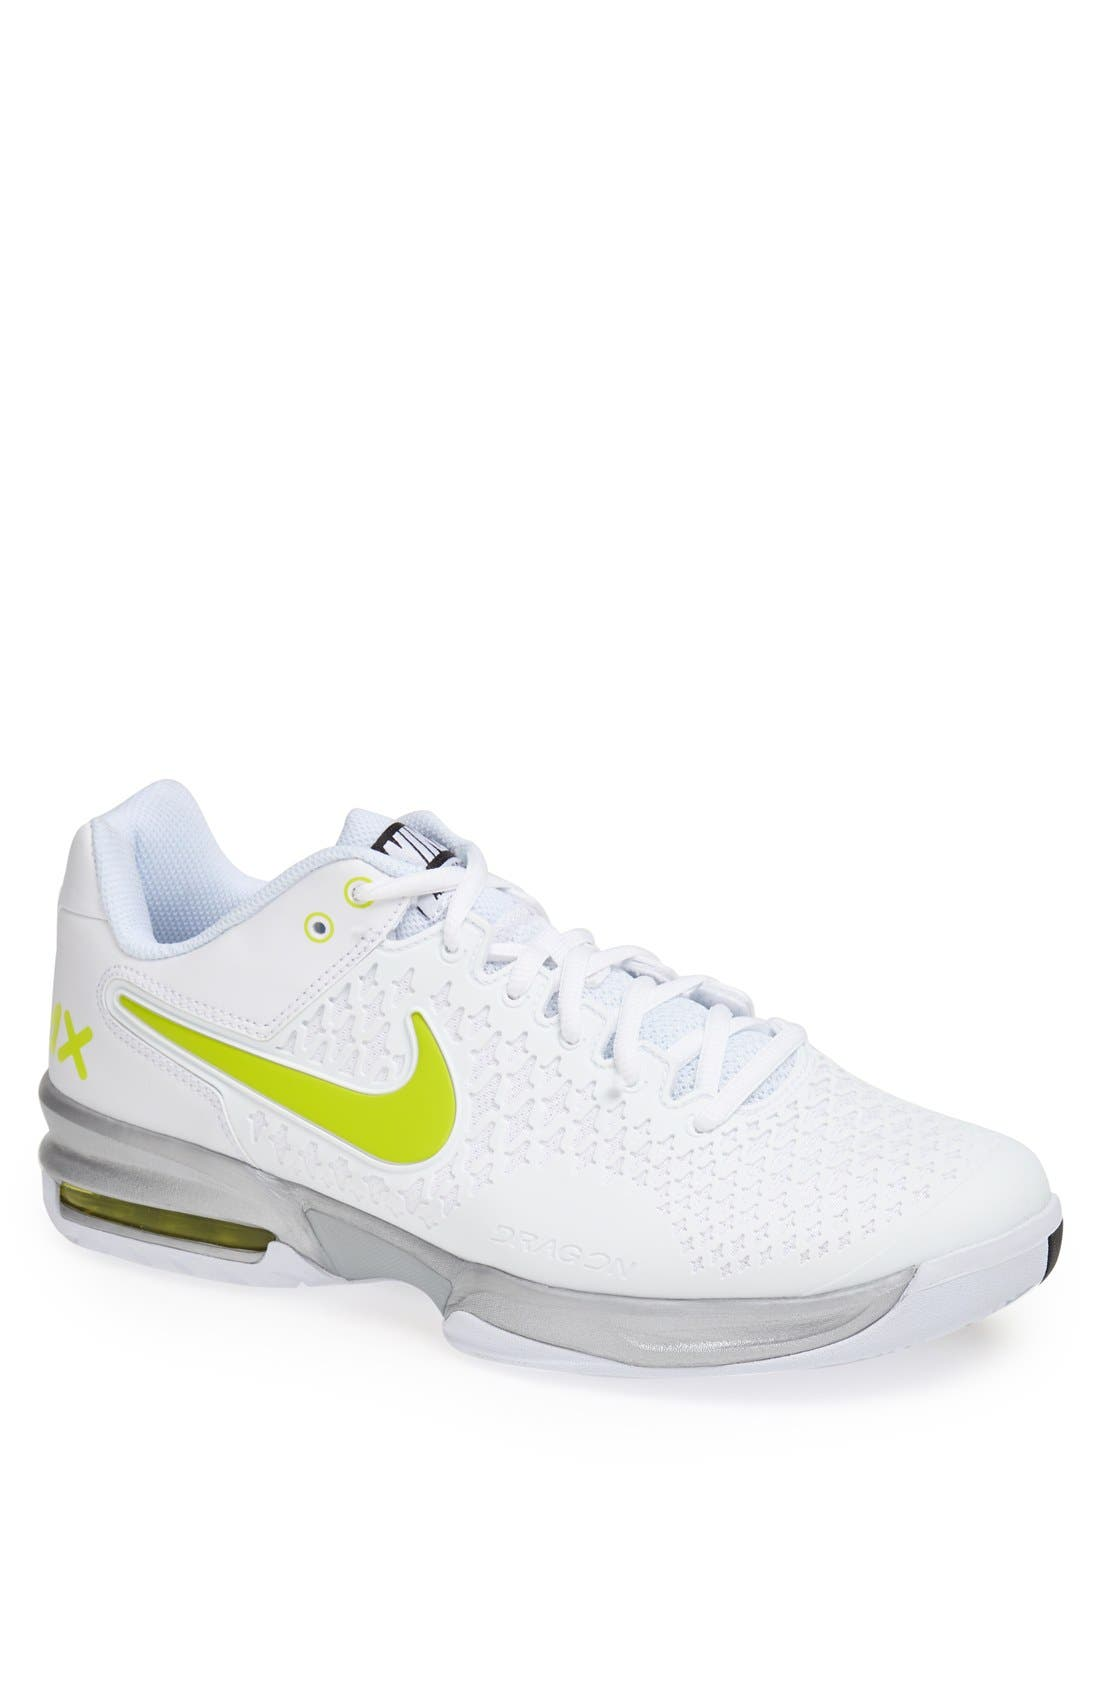 Main Image - Nike 'Air Max Cage' Tennis Shoe (Men)